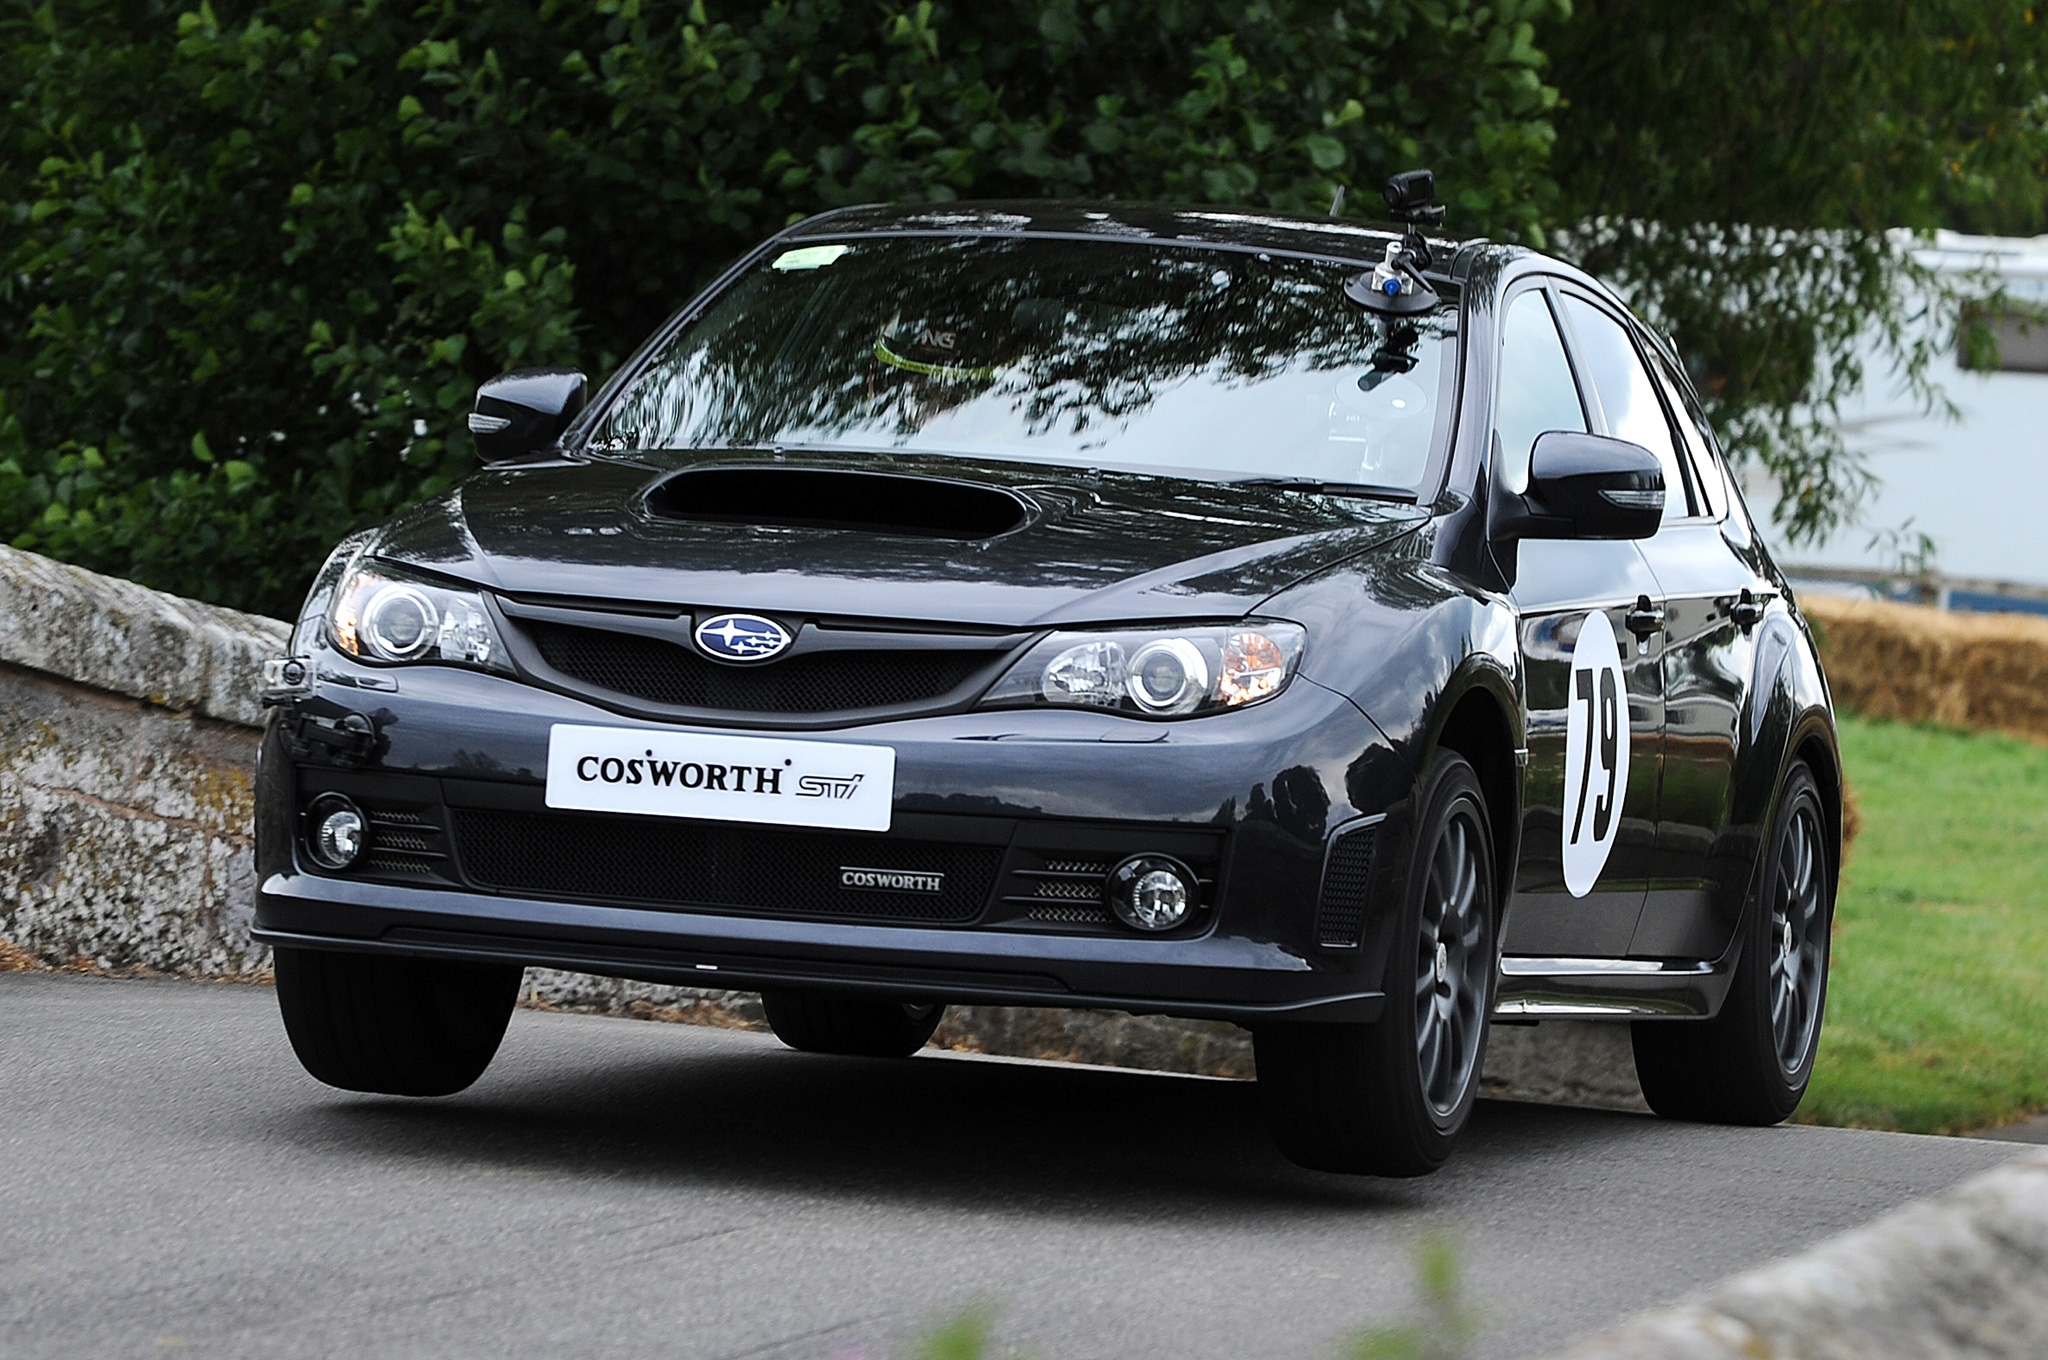 2011 Subaru Impreza STI Cosworth CS400 photo - 1